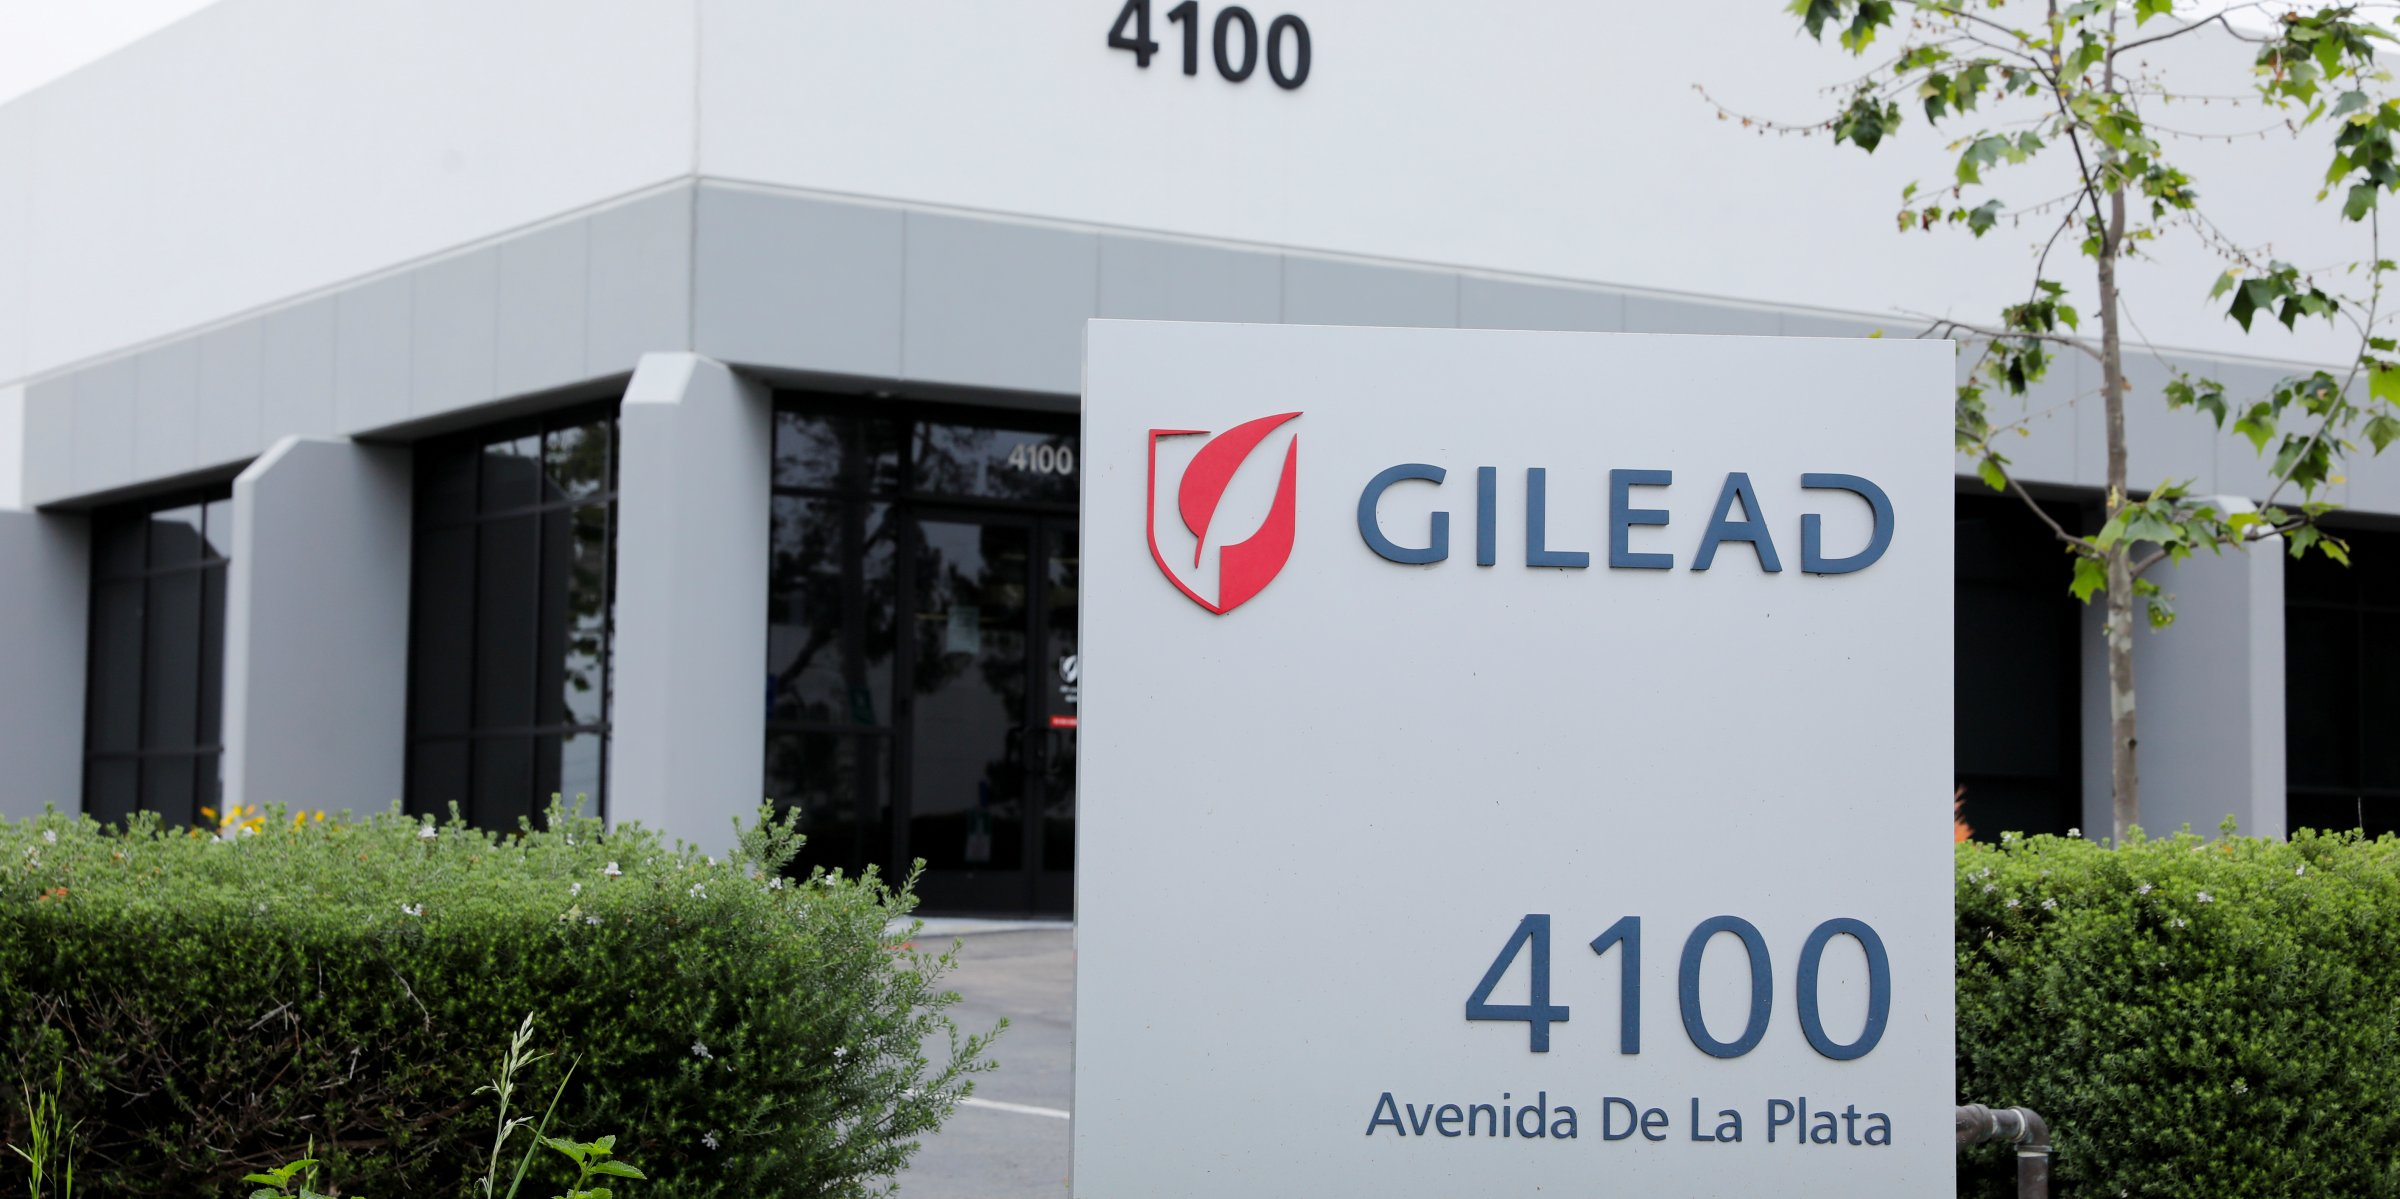 Gilead Sets Price Of COVID-19 Drug Remdesivir At $3,120 As Trump Administration Secures Supply For 500,000 Patients